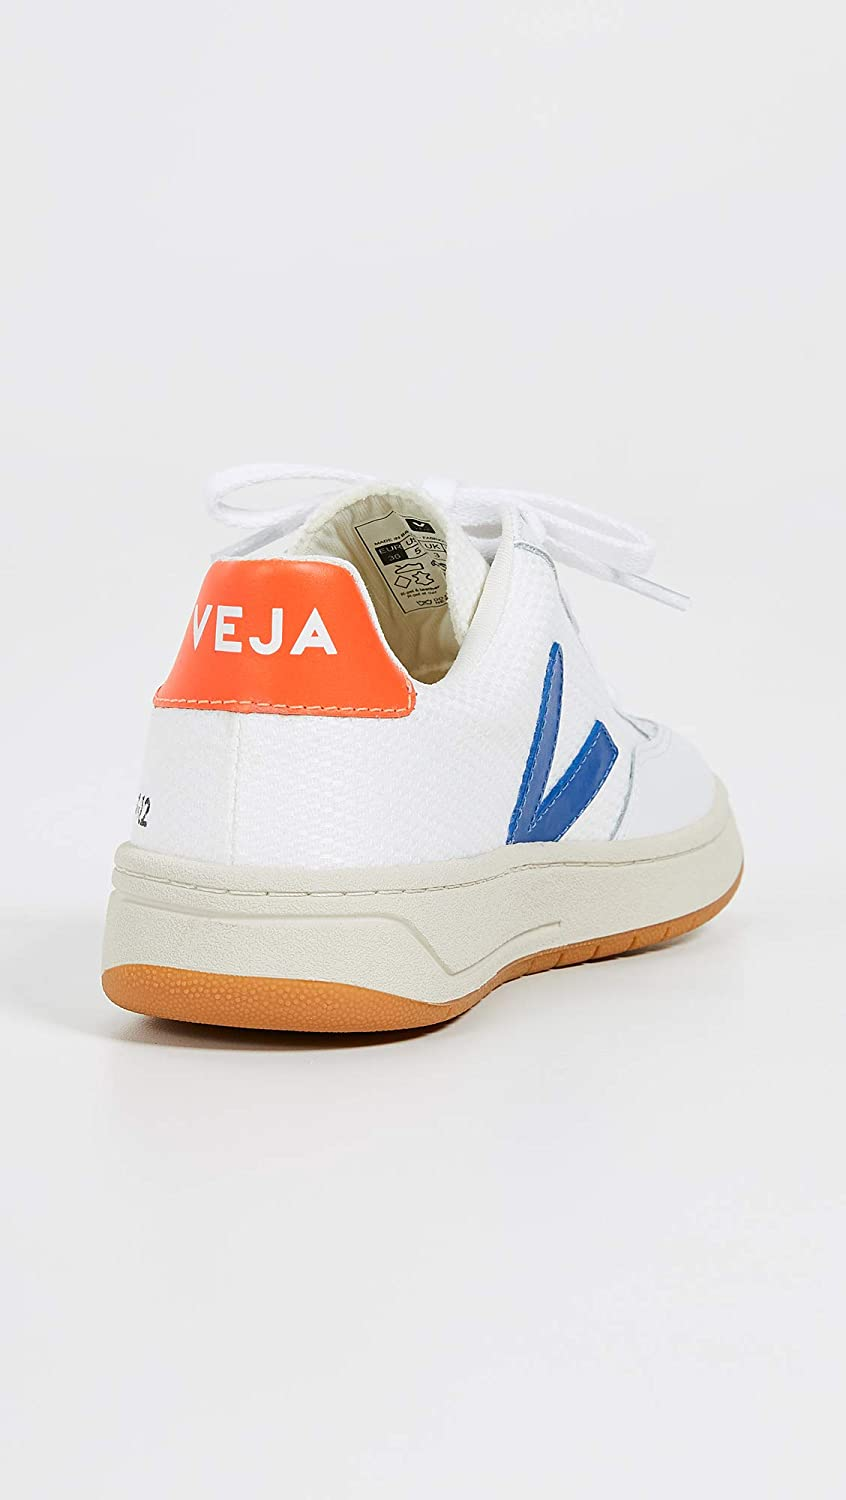 Veja Women's V-12 Lace Up Sneakers